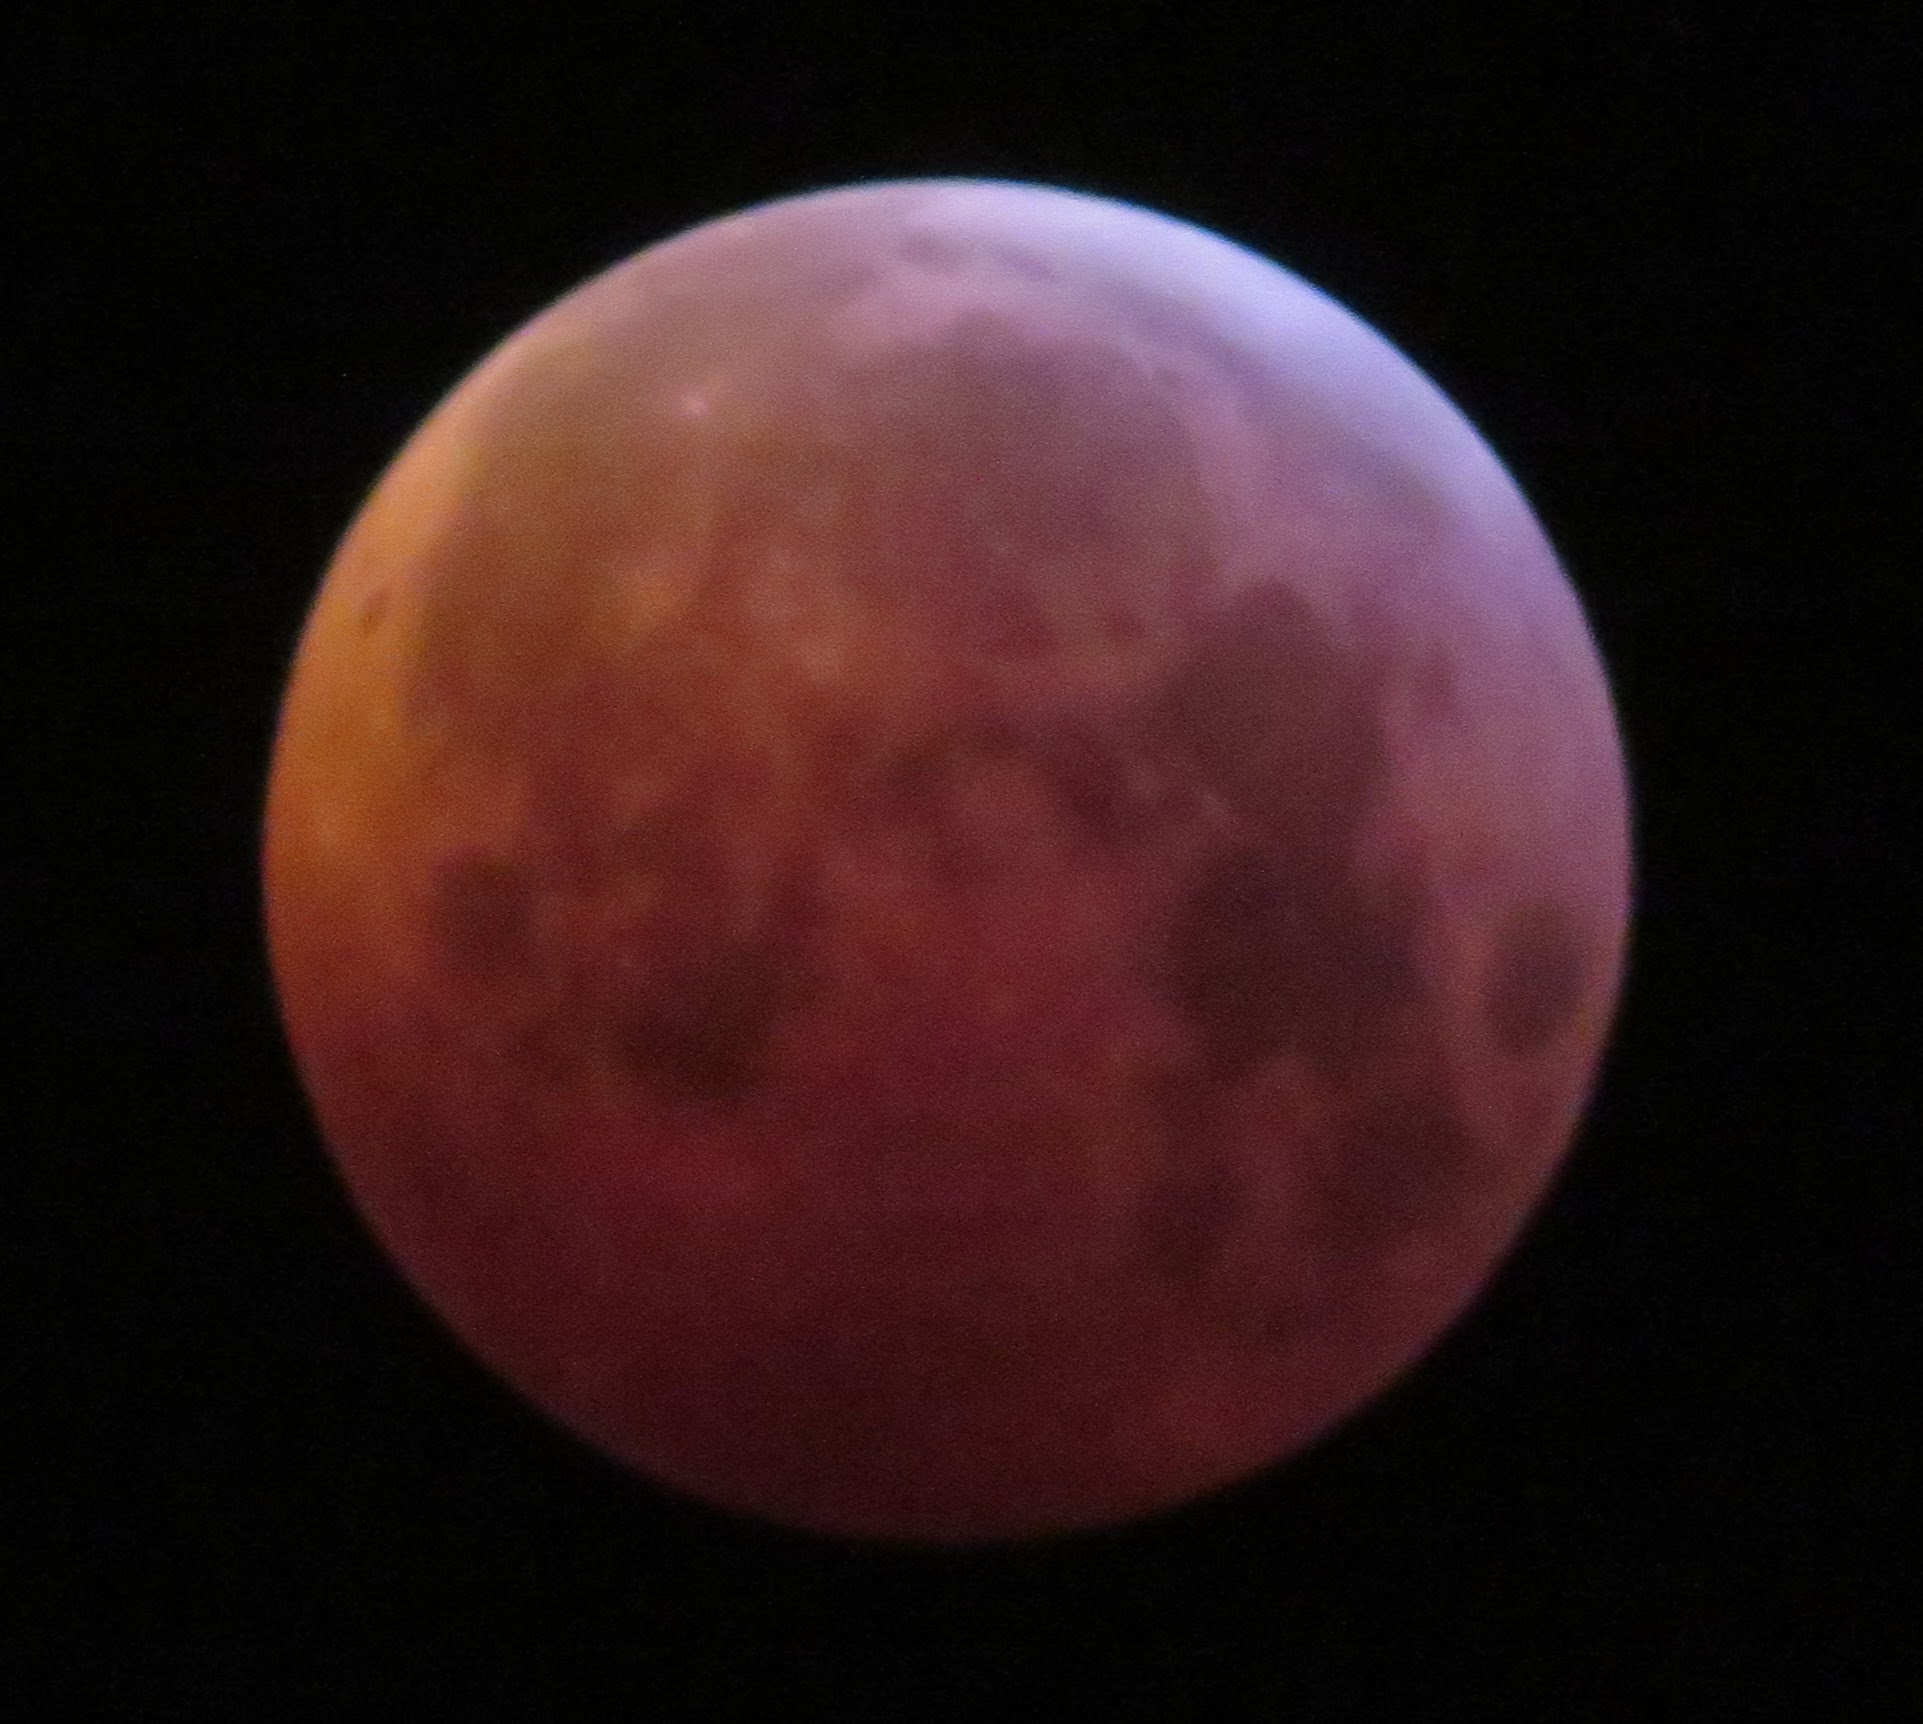 Lunar_eclipse_of_2019_January_21_Belgium.jpg